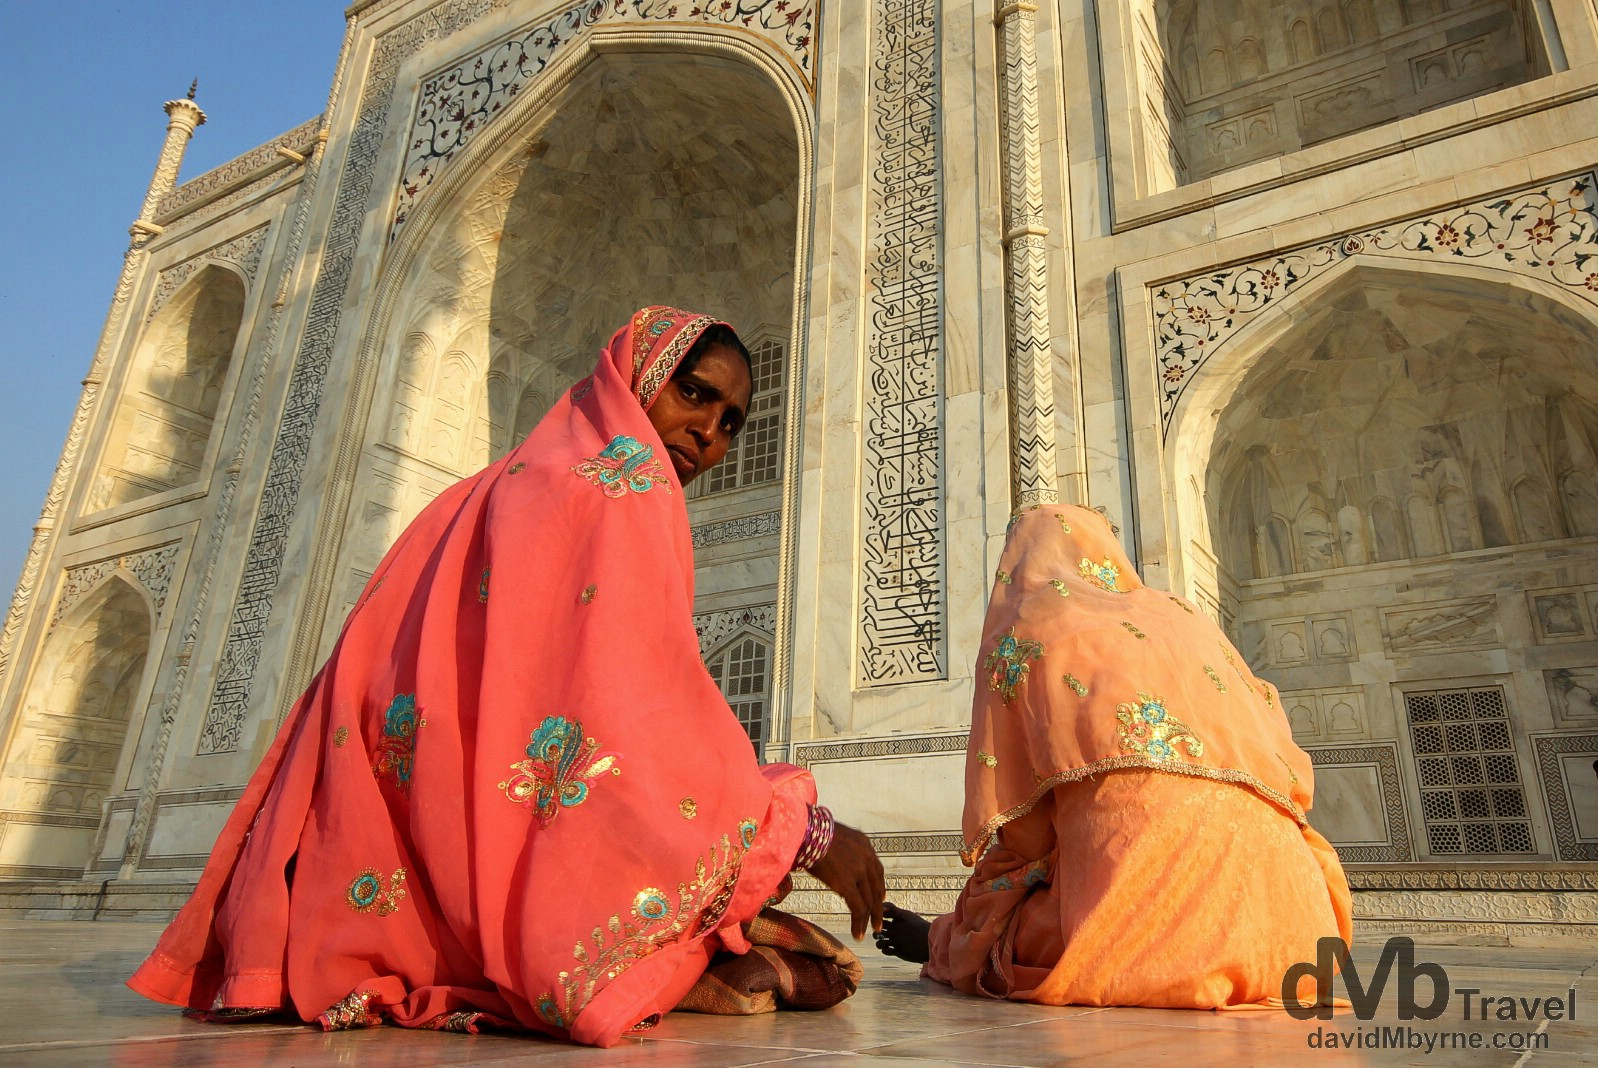 Sitting on the raised marble platform surrounding the Taj Mahal just after sunset. Agra, Uttar Pradesh, India. October 11th 2012.